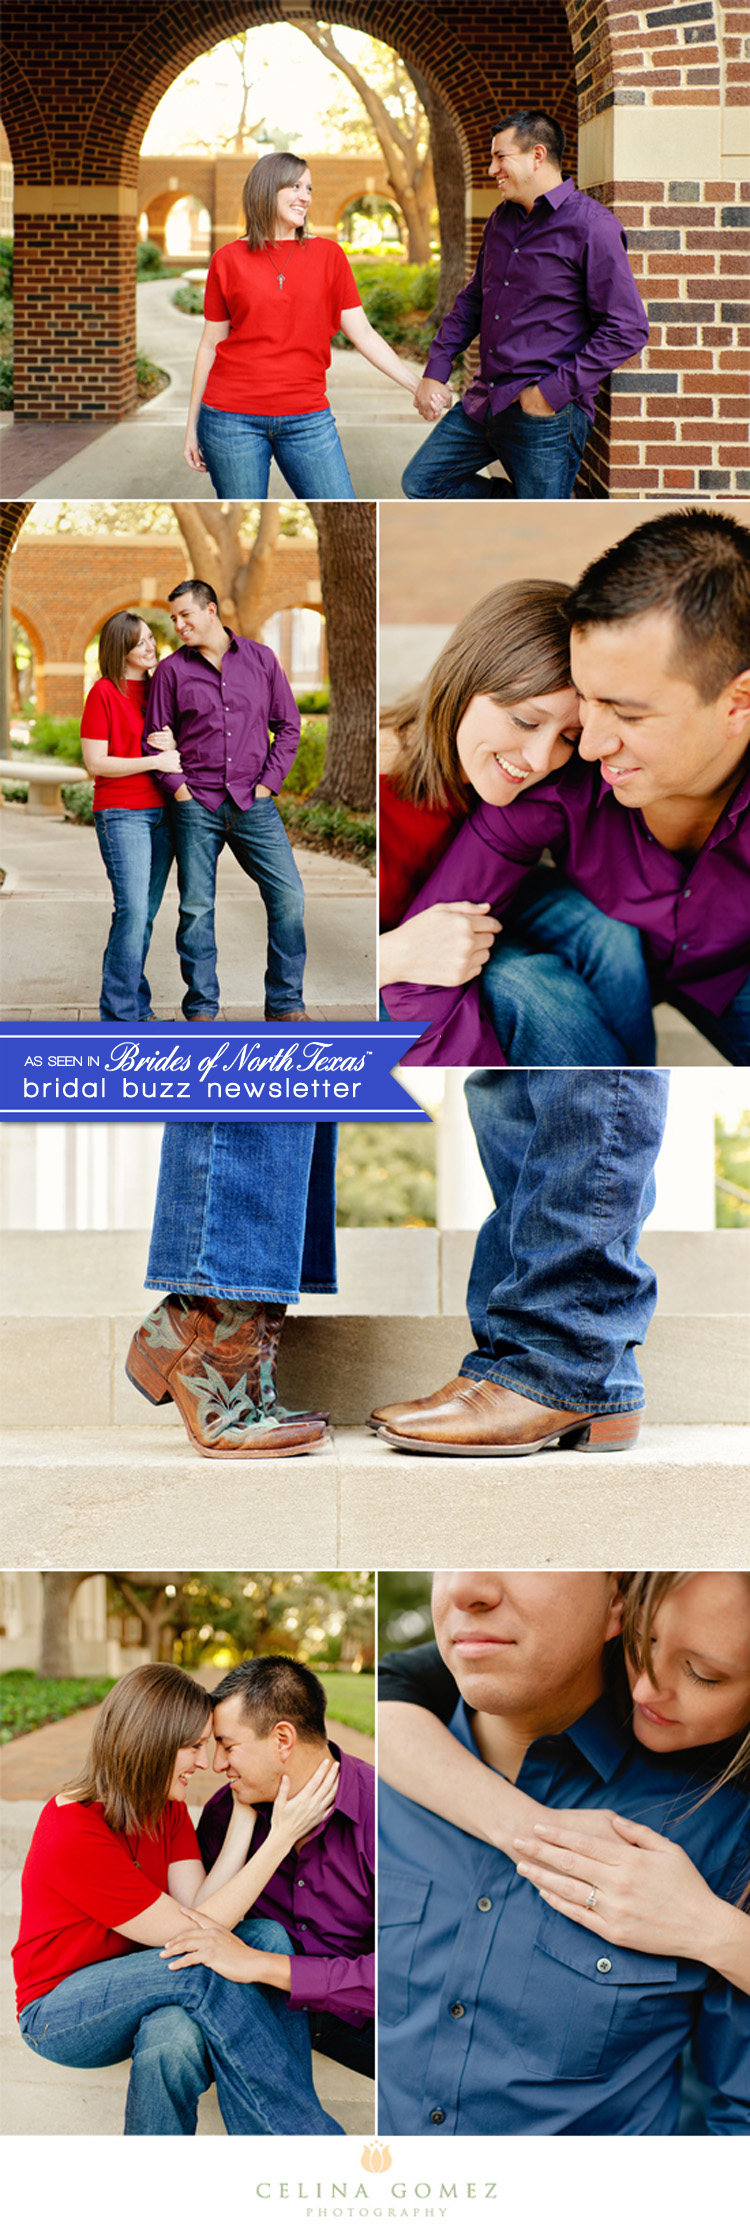 Brides of North Texas Almost Married Couple - Celina Gomez Photography